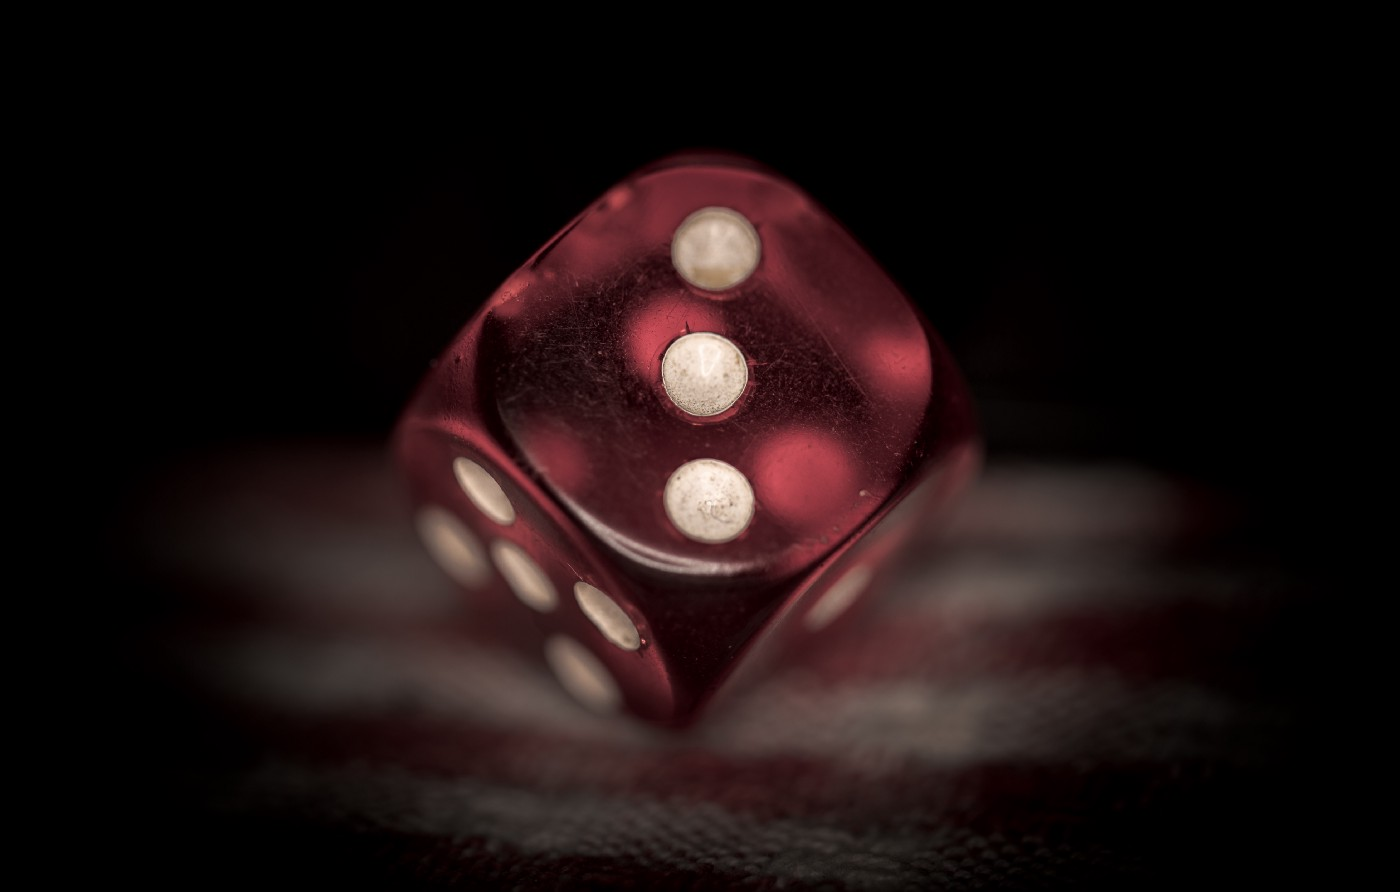 A red die being rolled and showing three dots in front of a black background